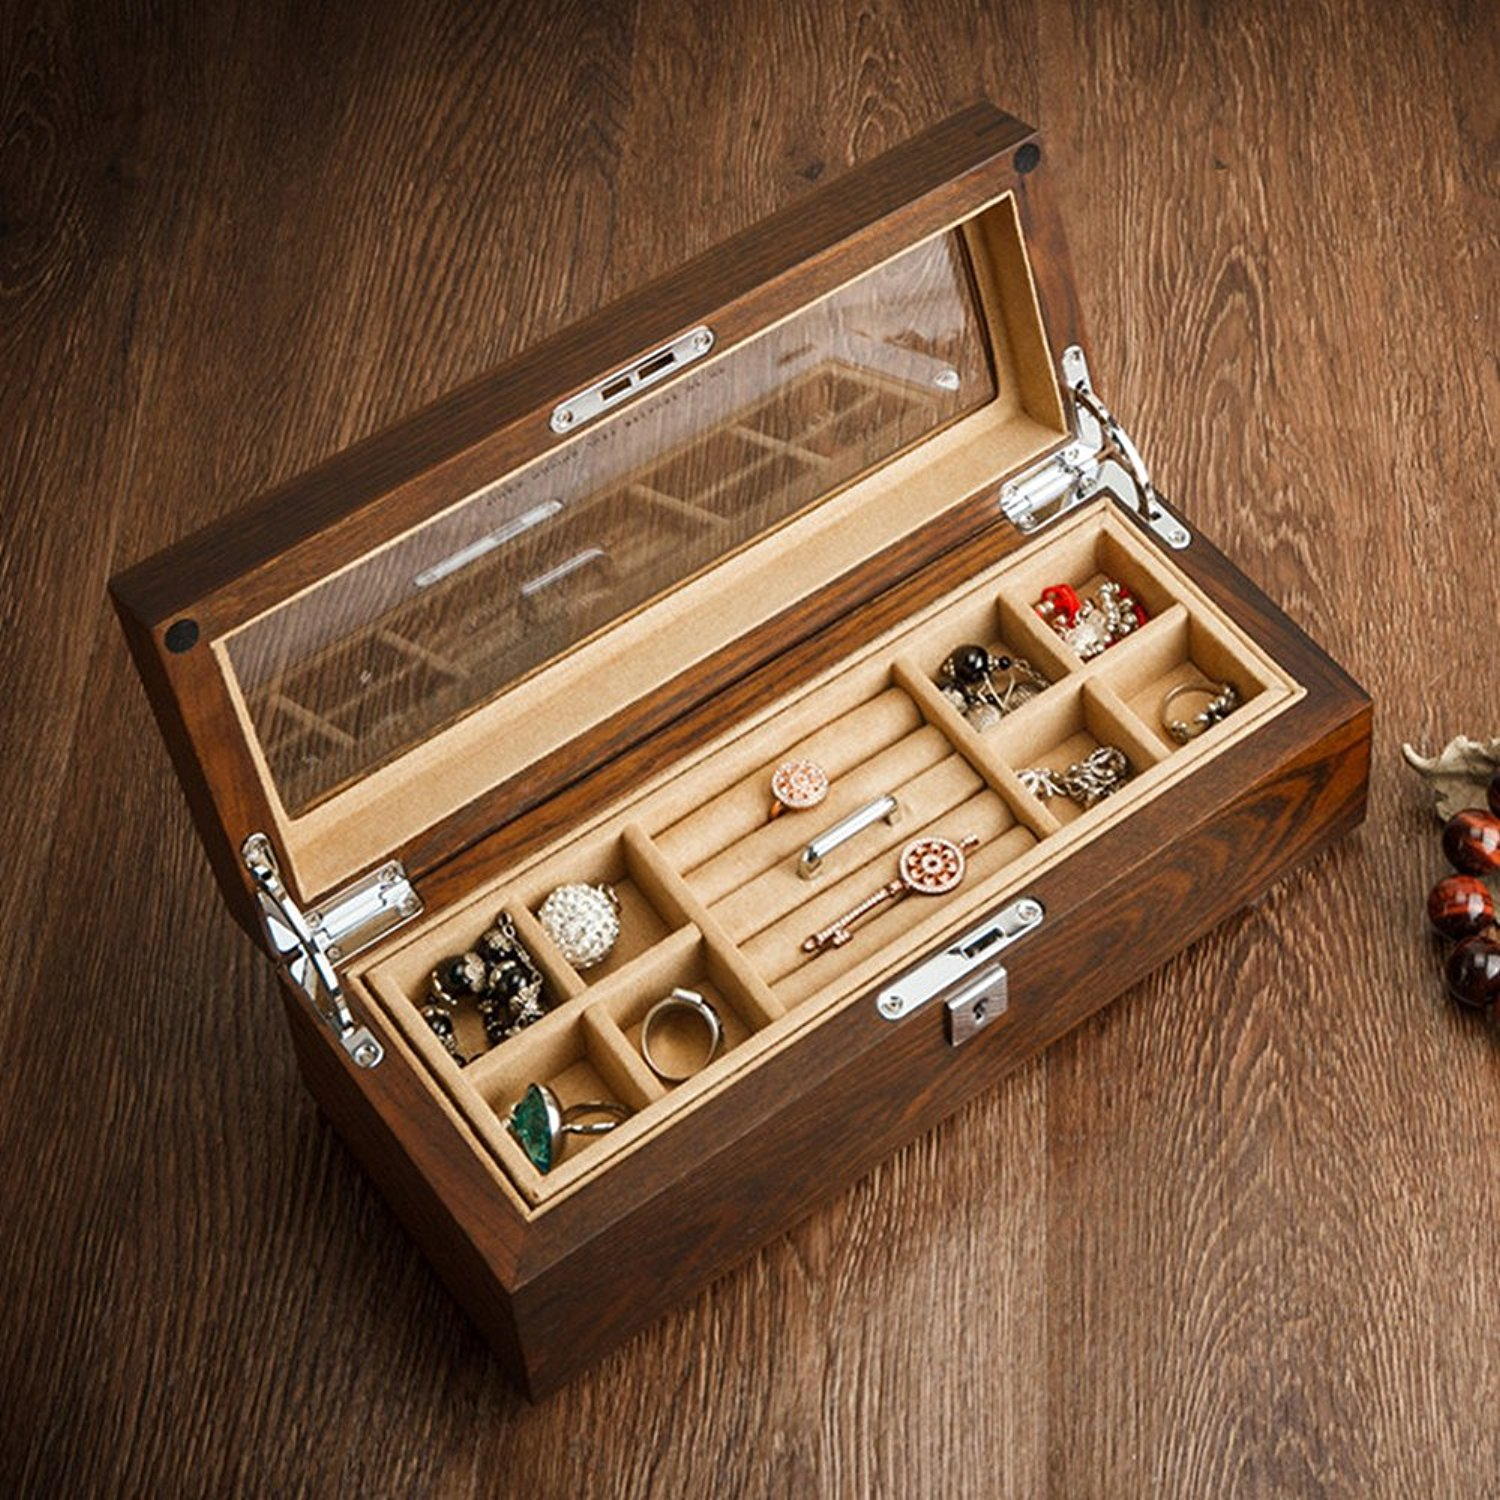 High-grade wooden jewelry box packaging for sale